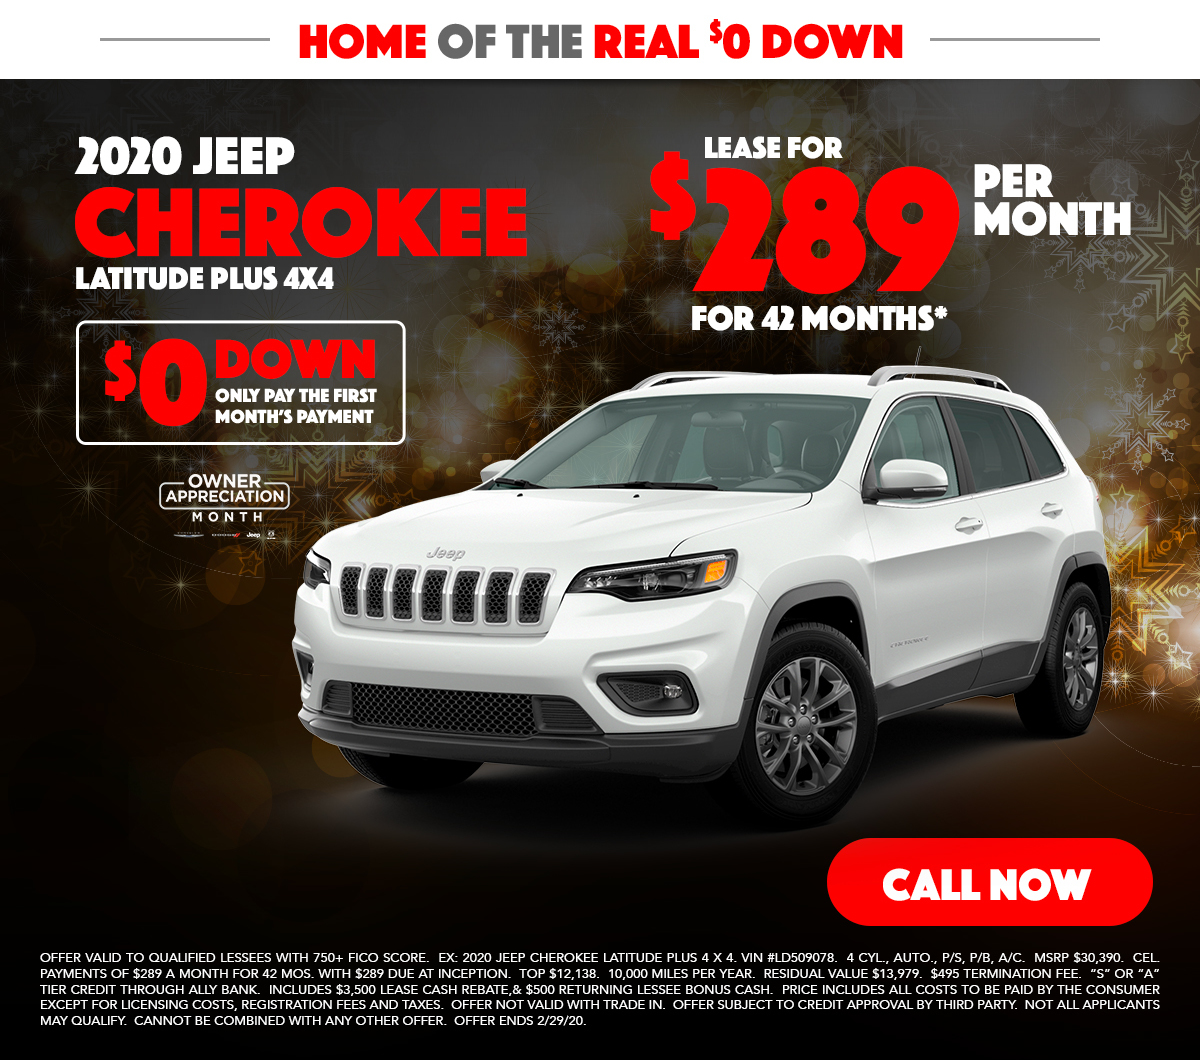 2019 Jeep Cherokee Lease Special